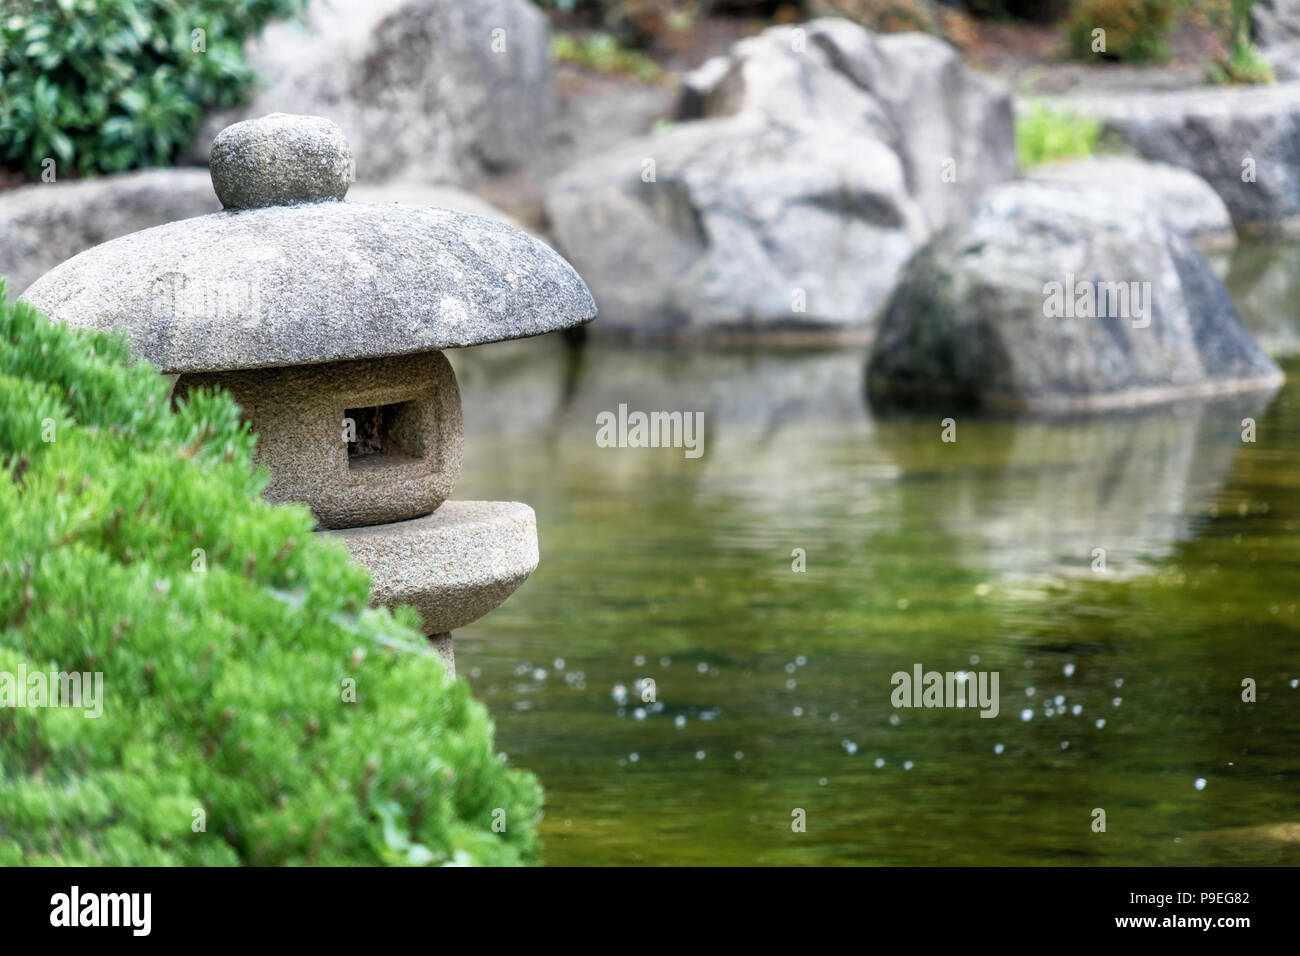 Pond in a Japanese garden with a traditional stone lantern in the foreground, low depth of field - Stock Image